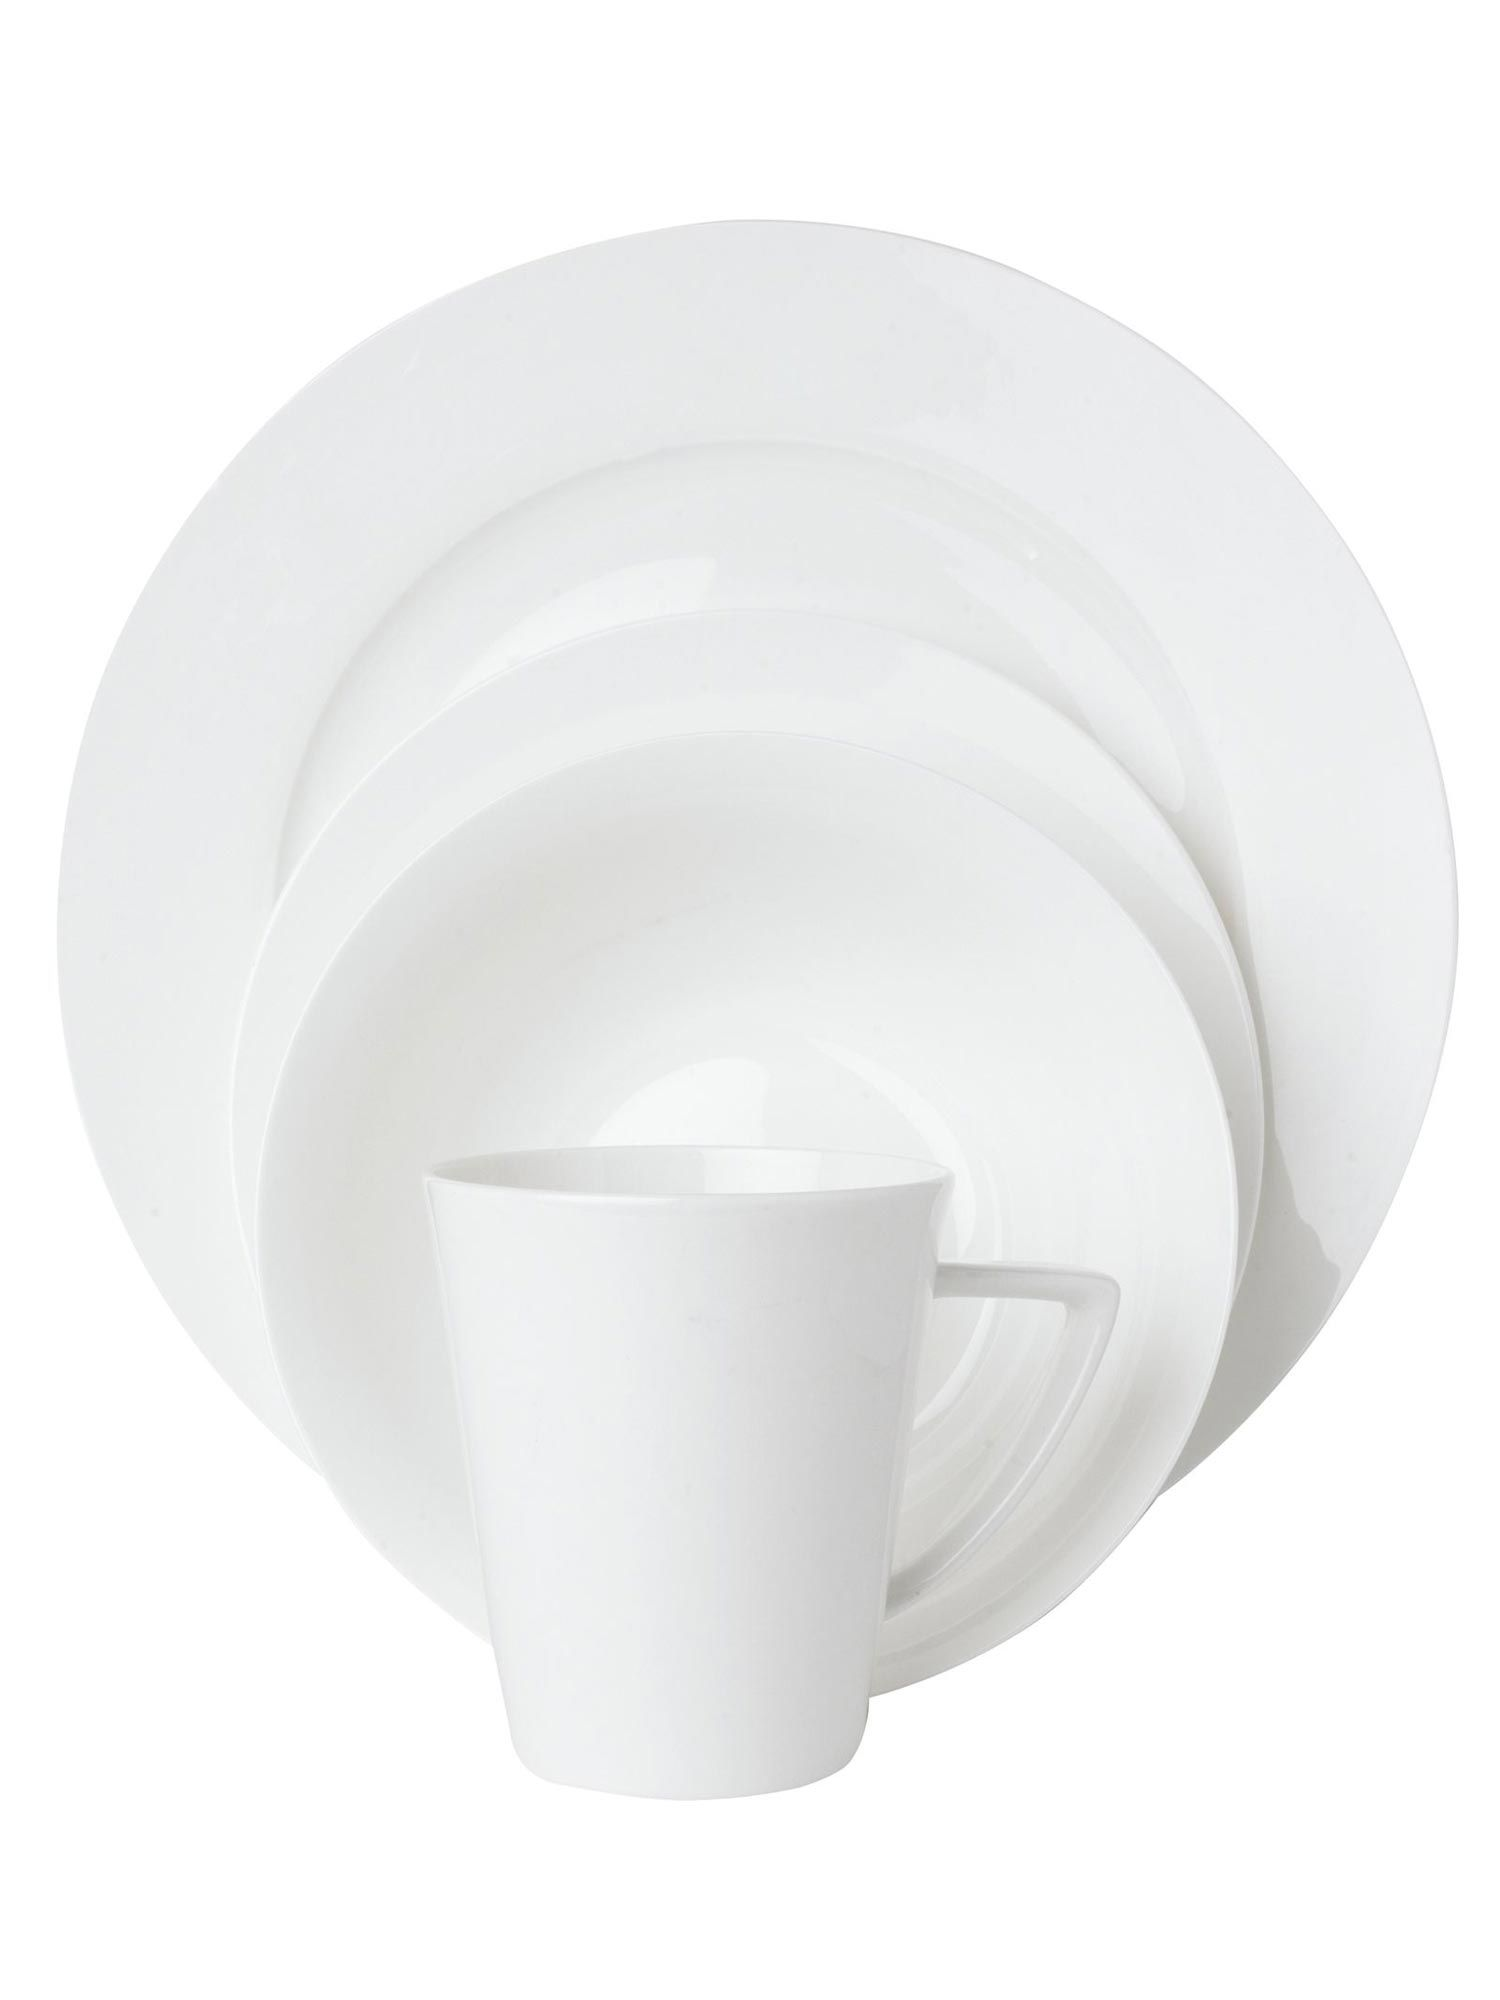 Eternal bone china dinnerware range